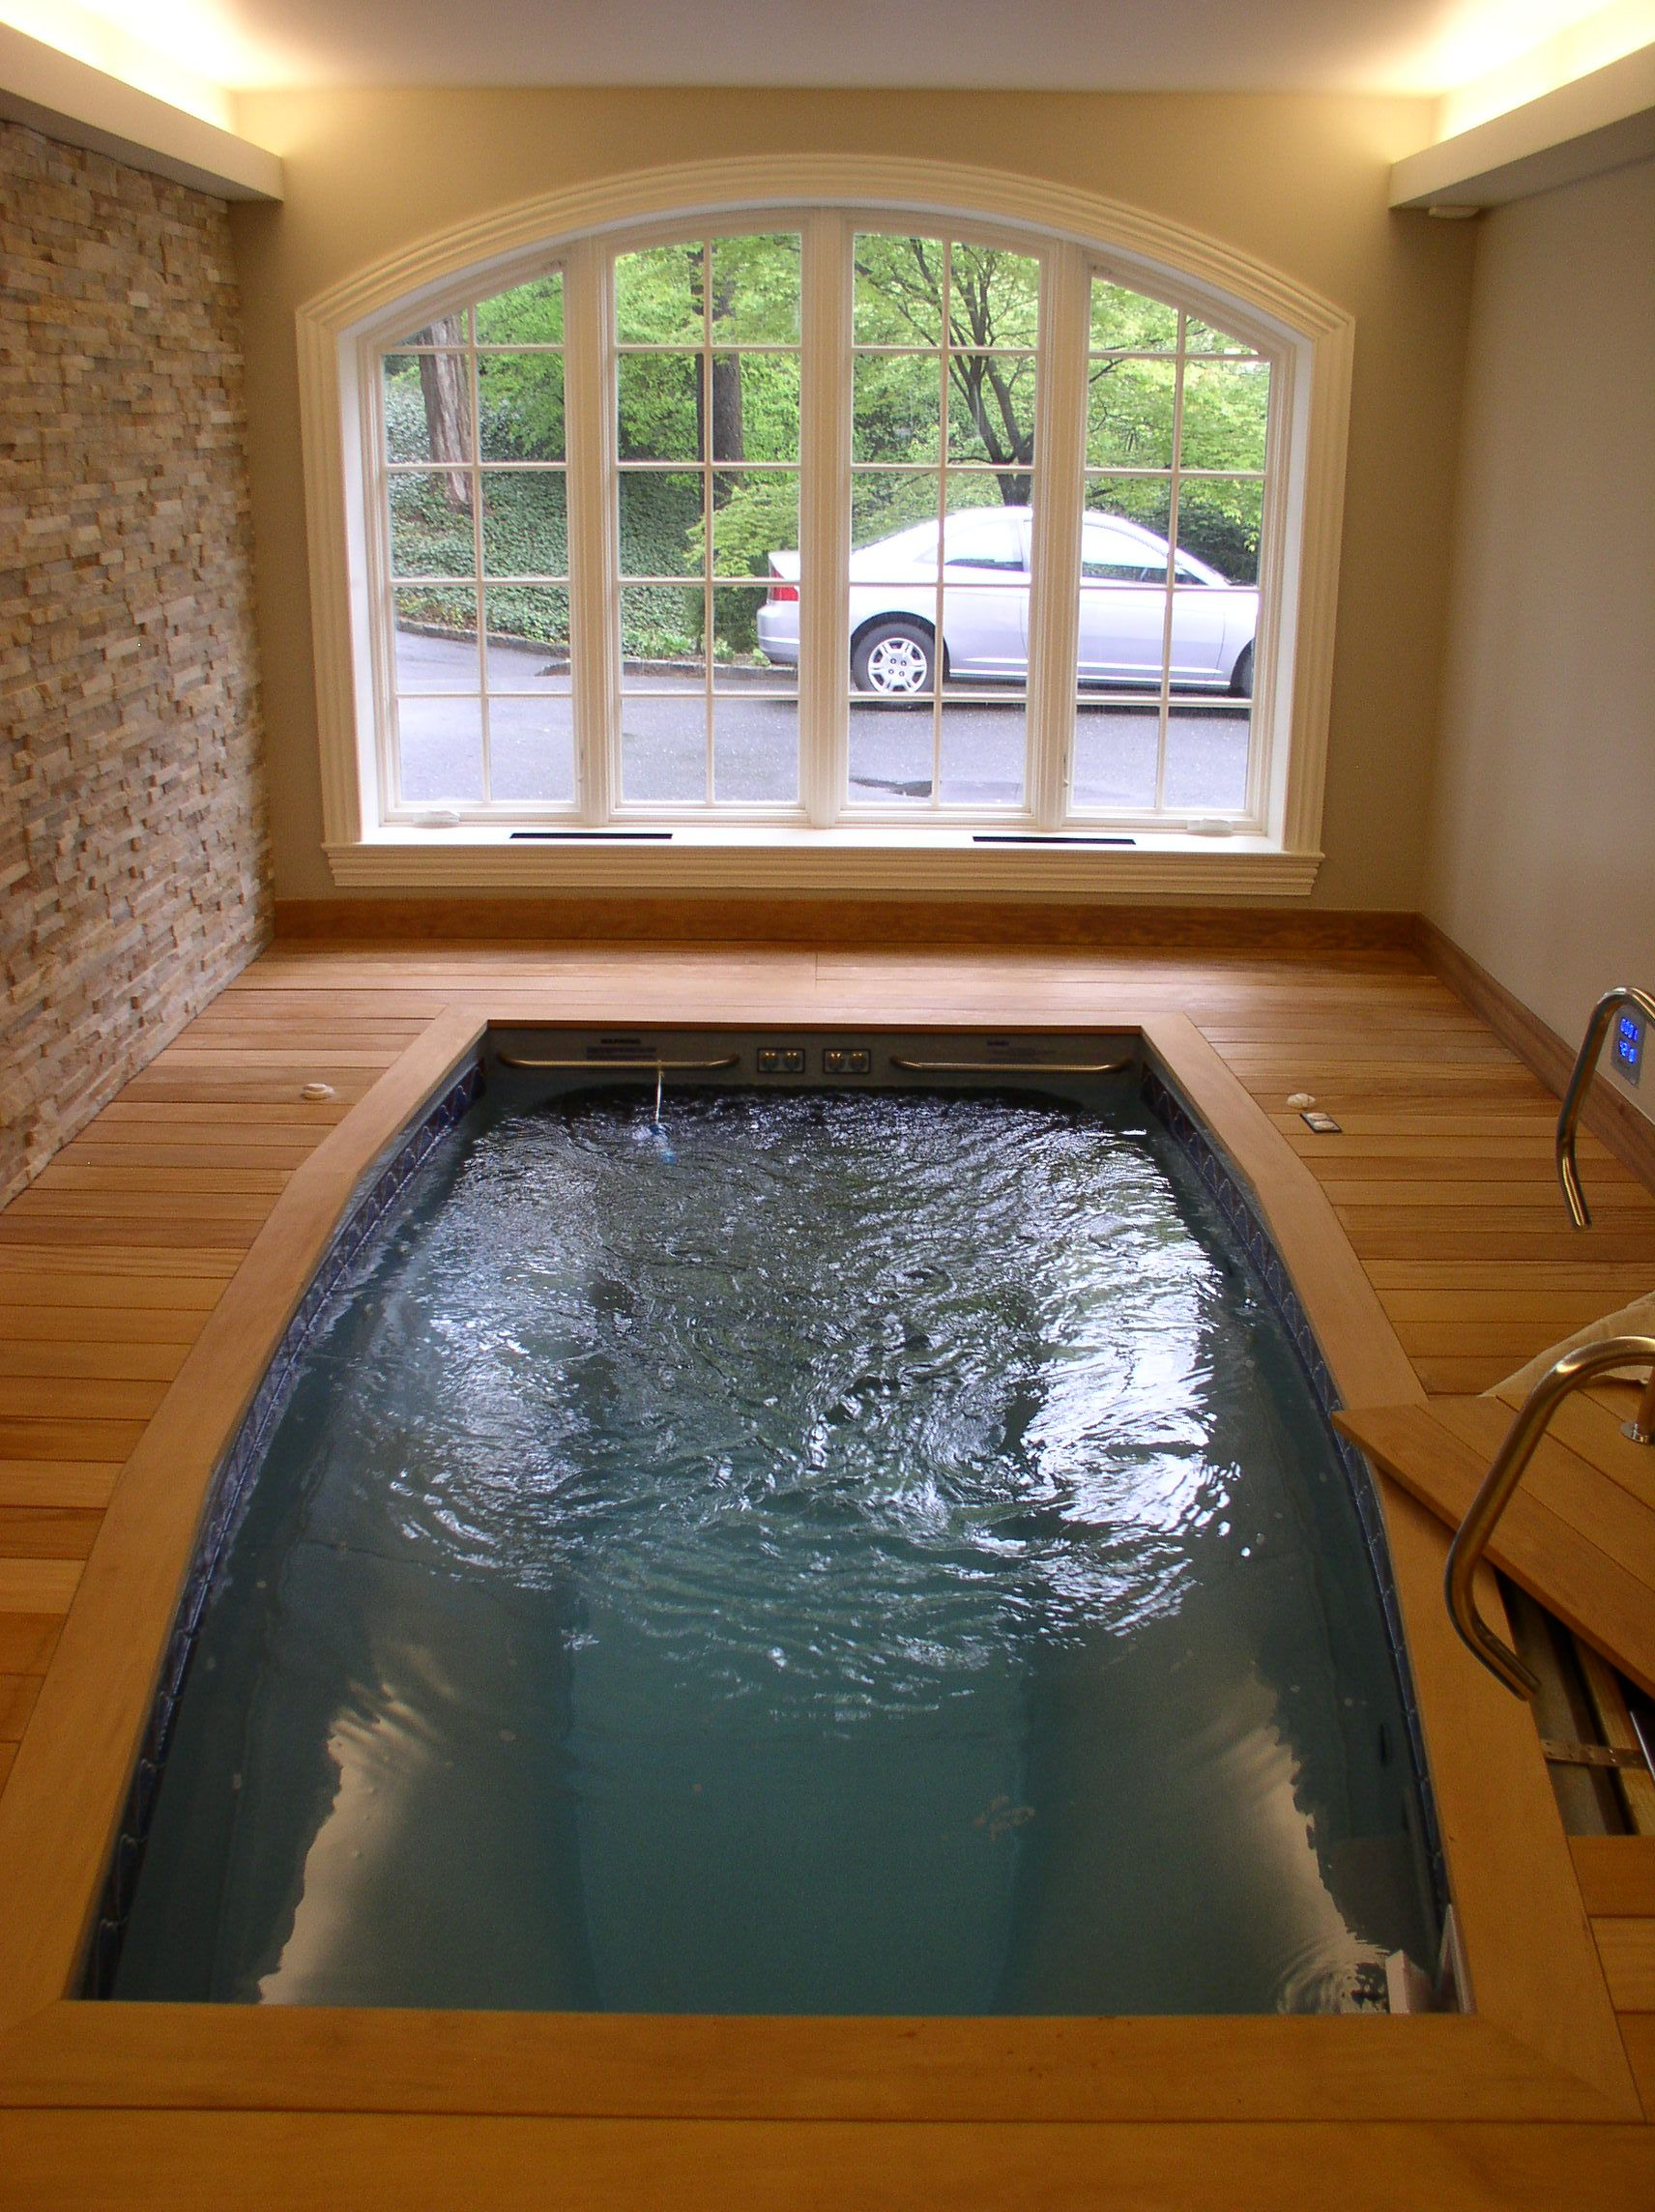 Residential Lap Pools Exercise Or Hydrotherapy Swimex Swim Spas Small Indoor Pool Indoor Pool Design Luxury Swimming Pools